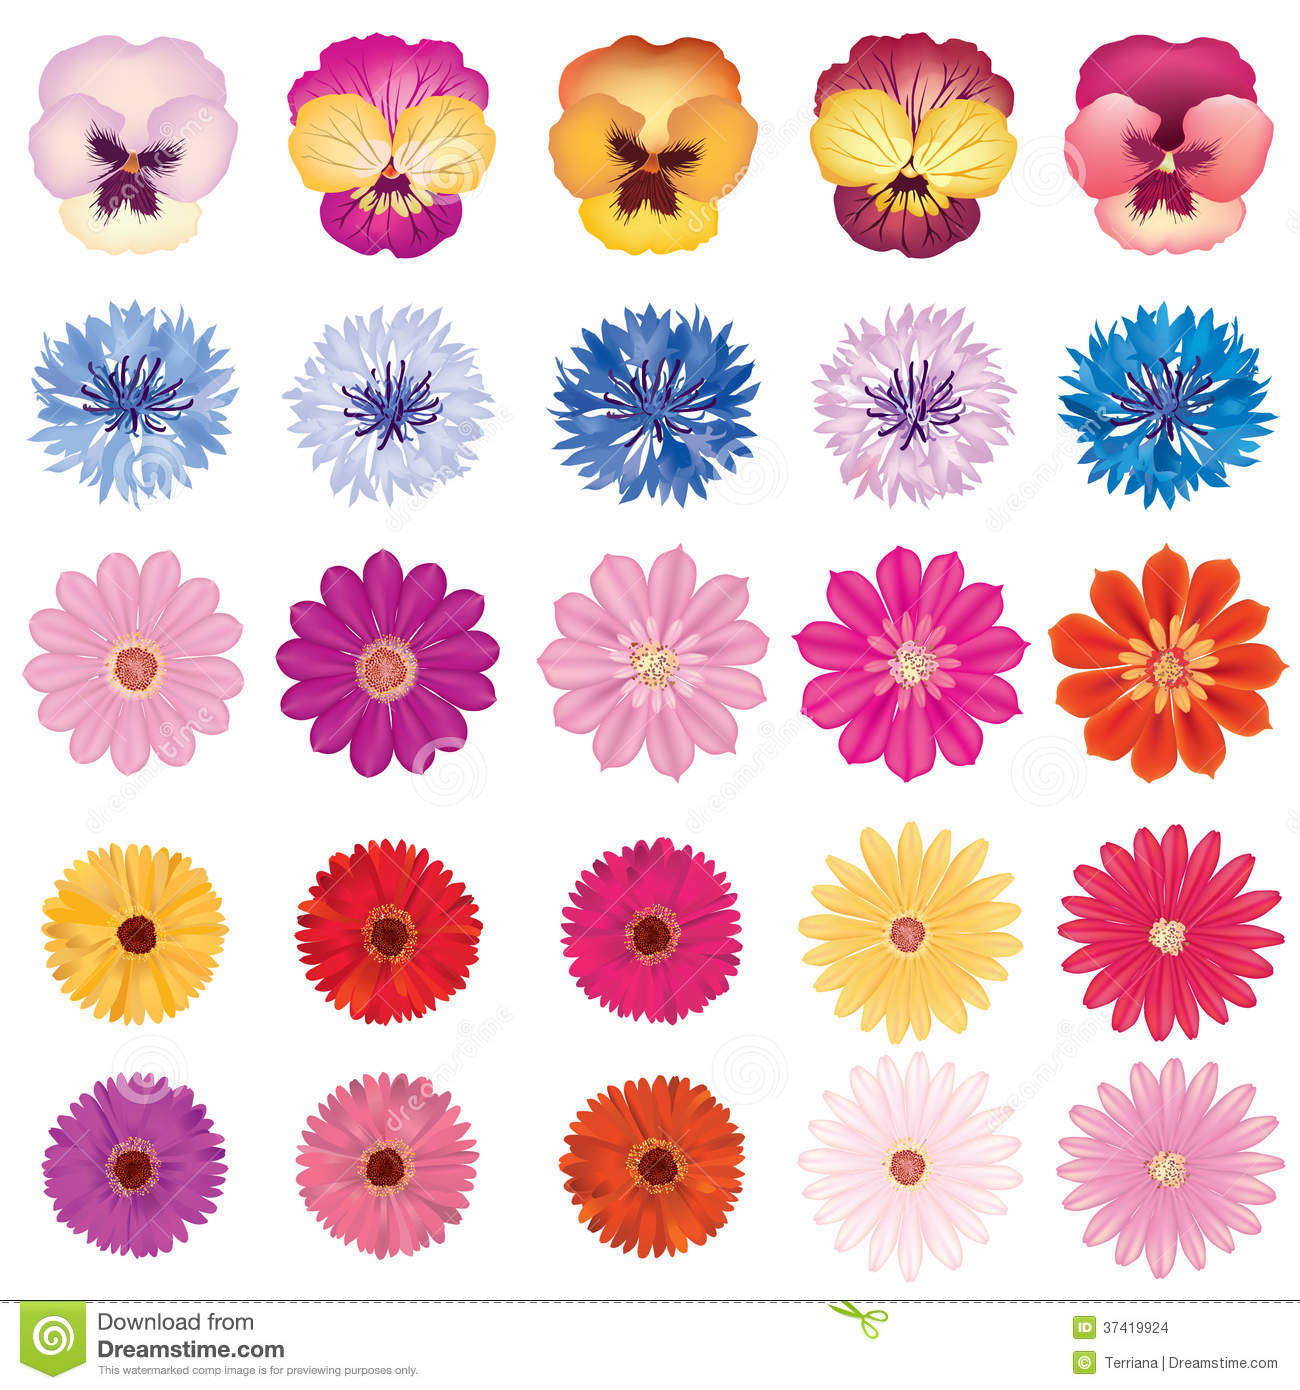 Flower icon set bloom collection on white background stock background bloom collection flower icon dhlflorist Images